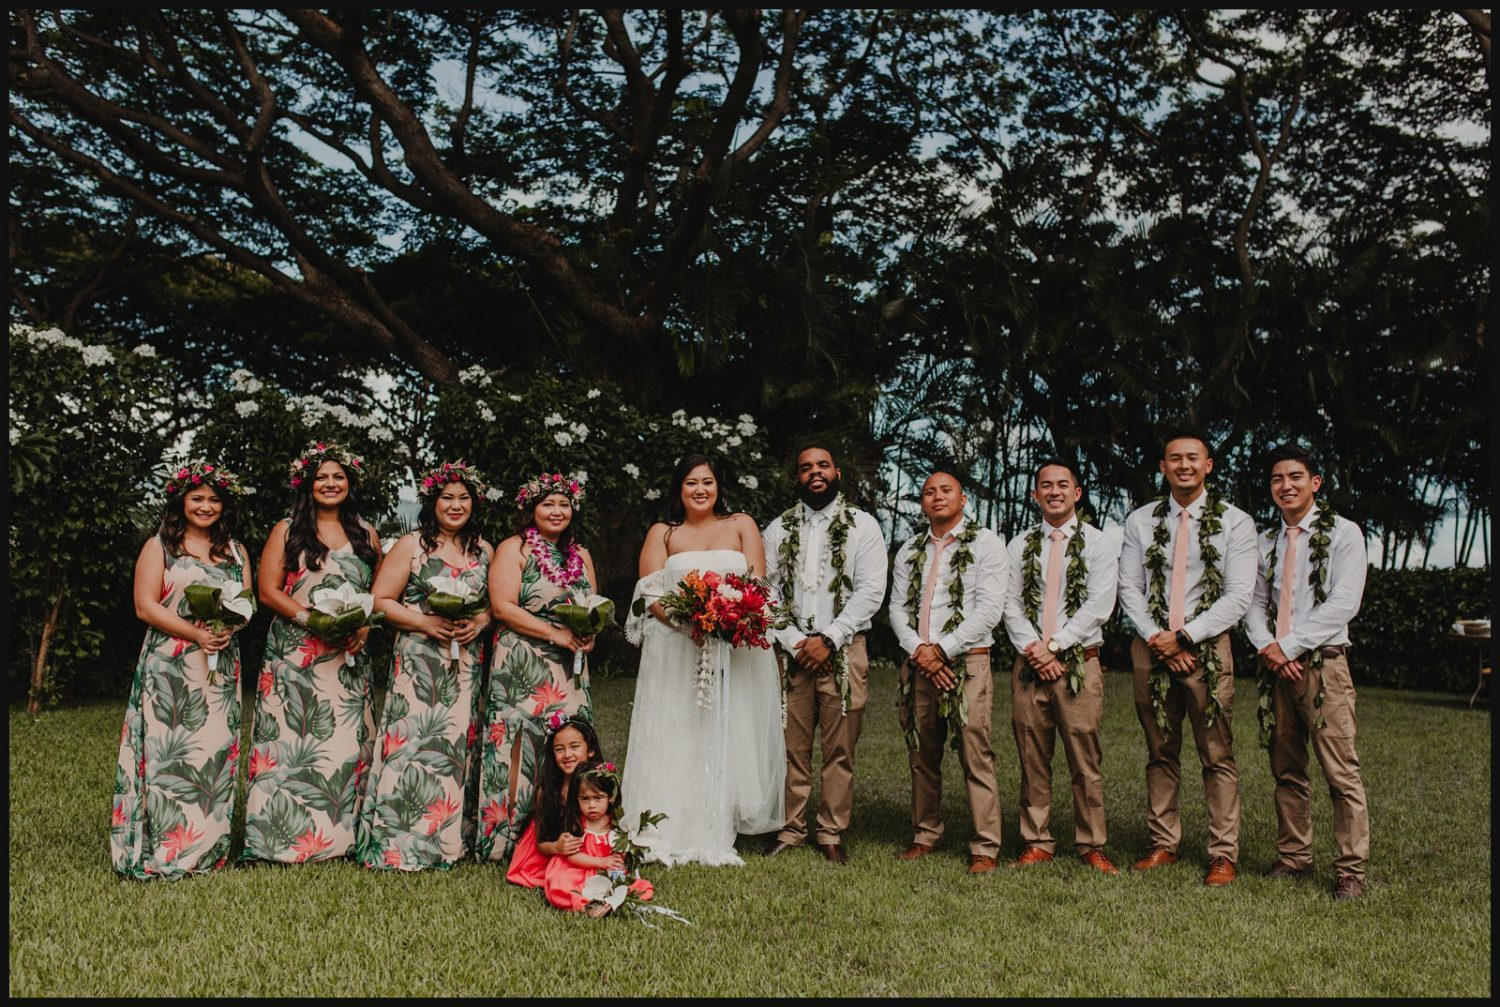 Oahu Hawaii Wedding Photography and Videography